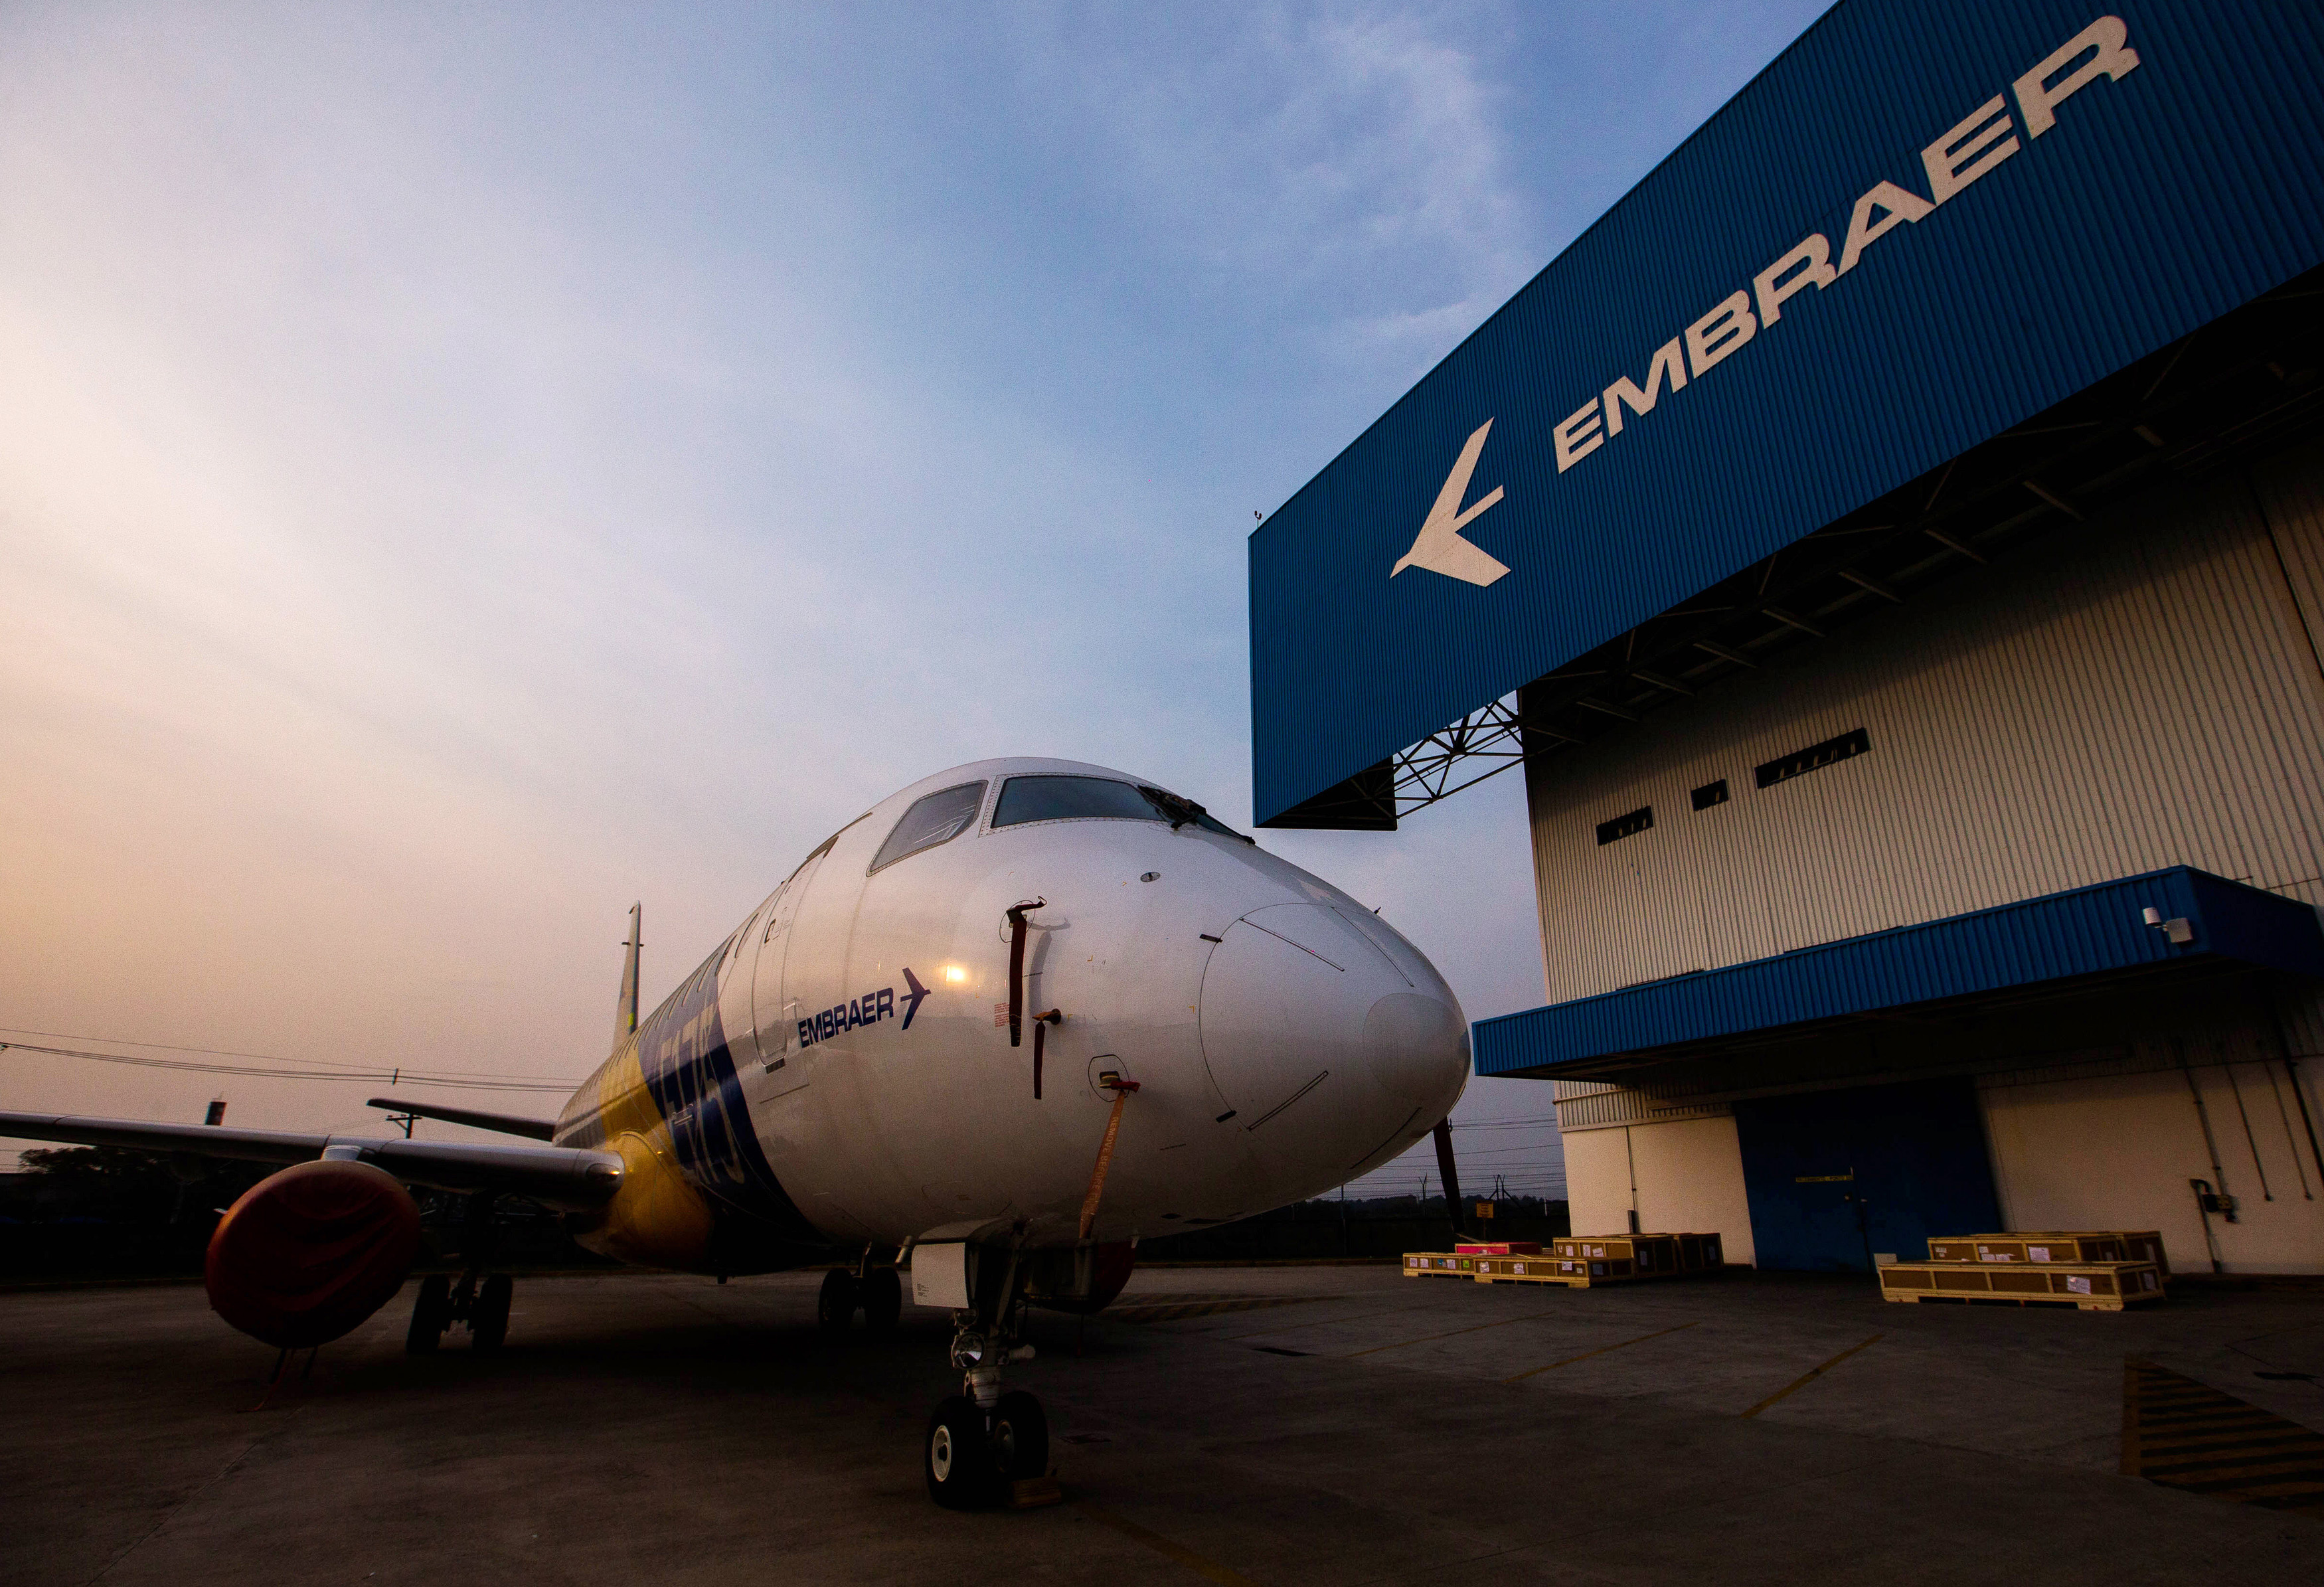 Embraer says still in talks with Boeing on tie-up